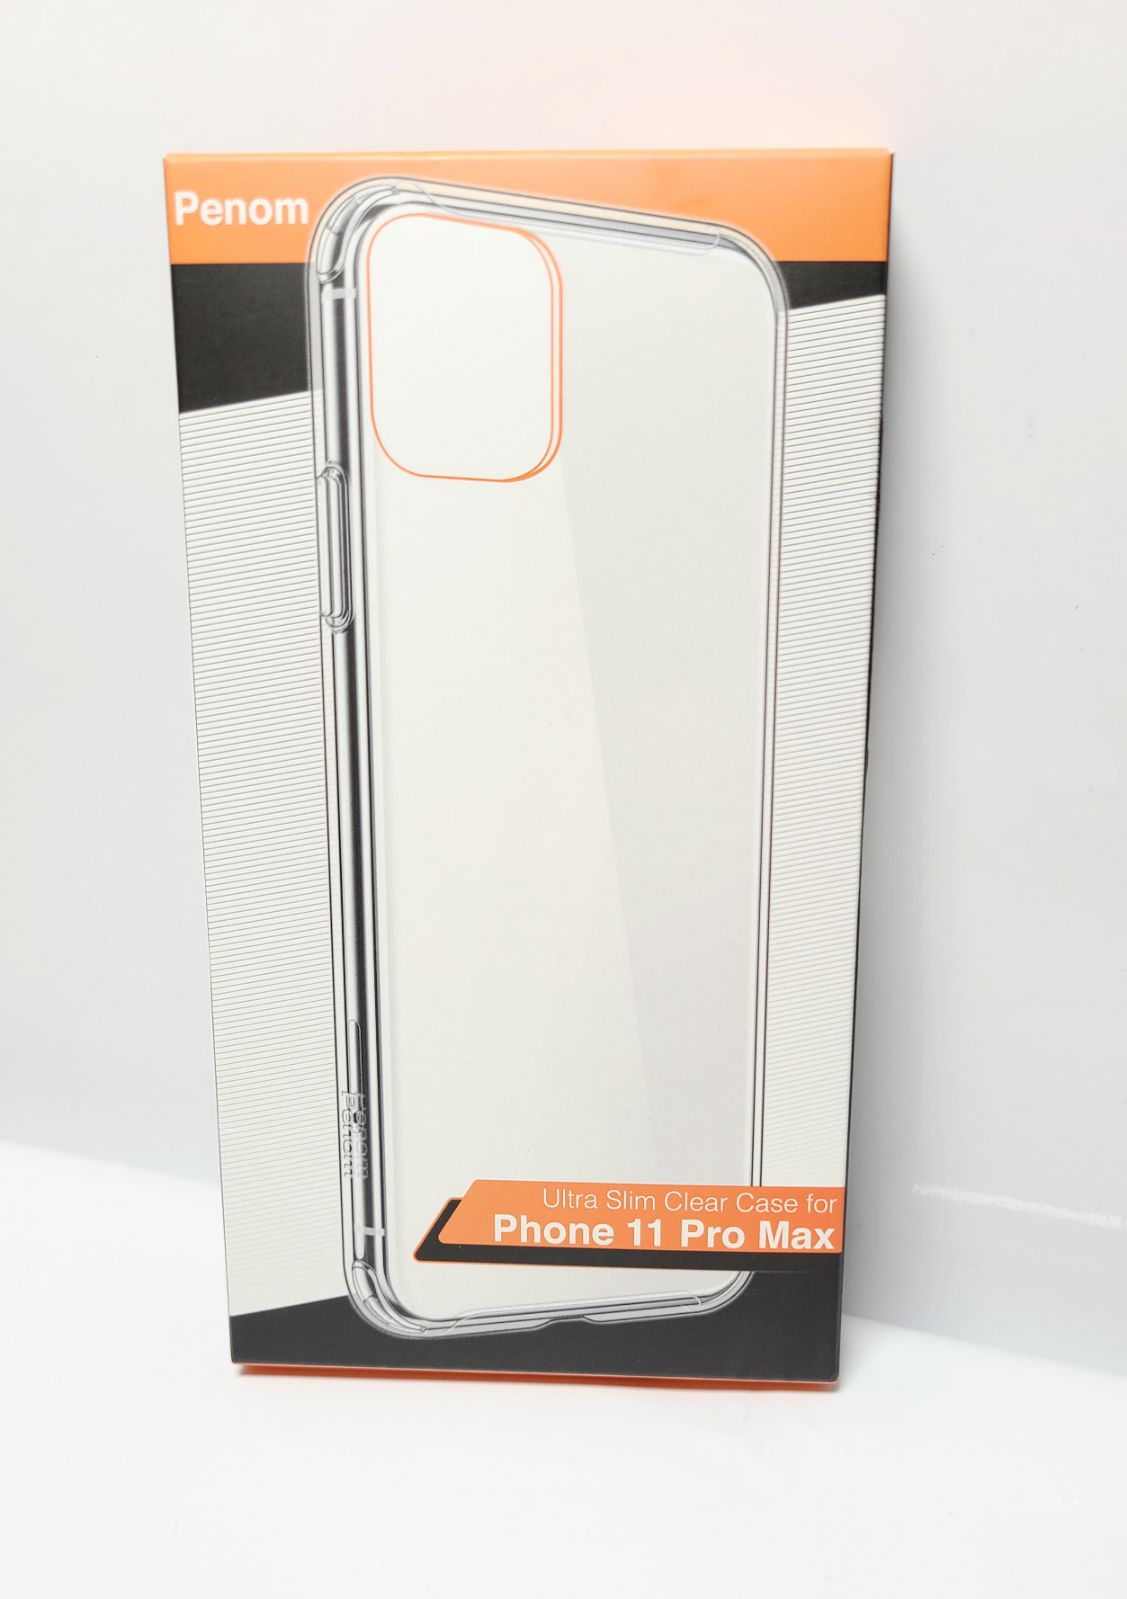 Ultra Slim Phone Case for iPhone 11 Pro